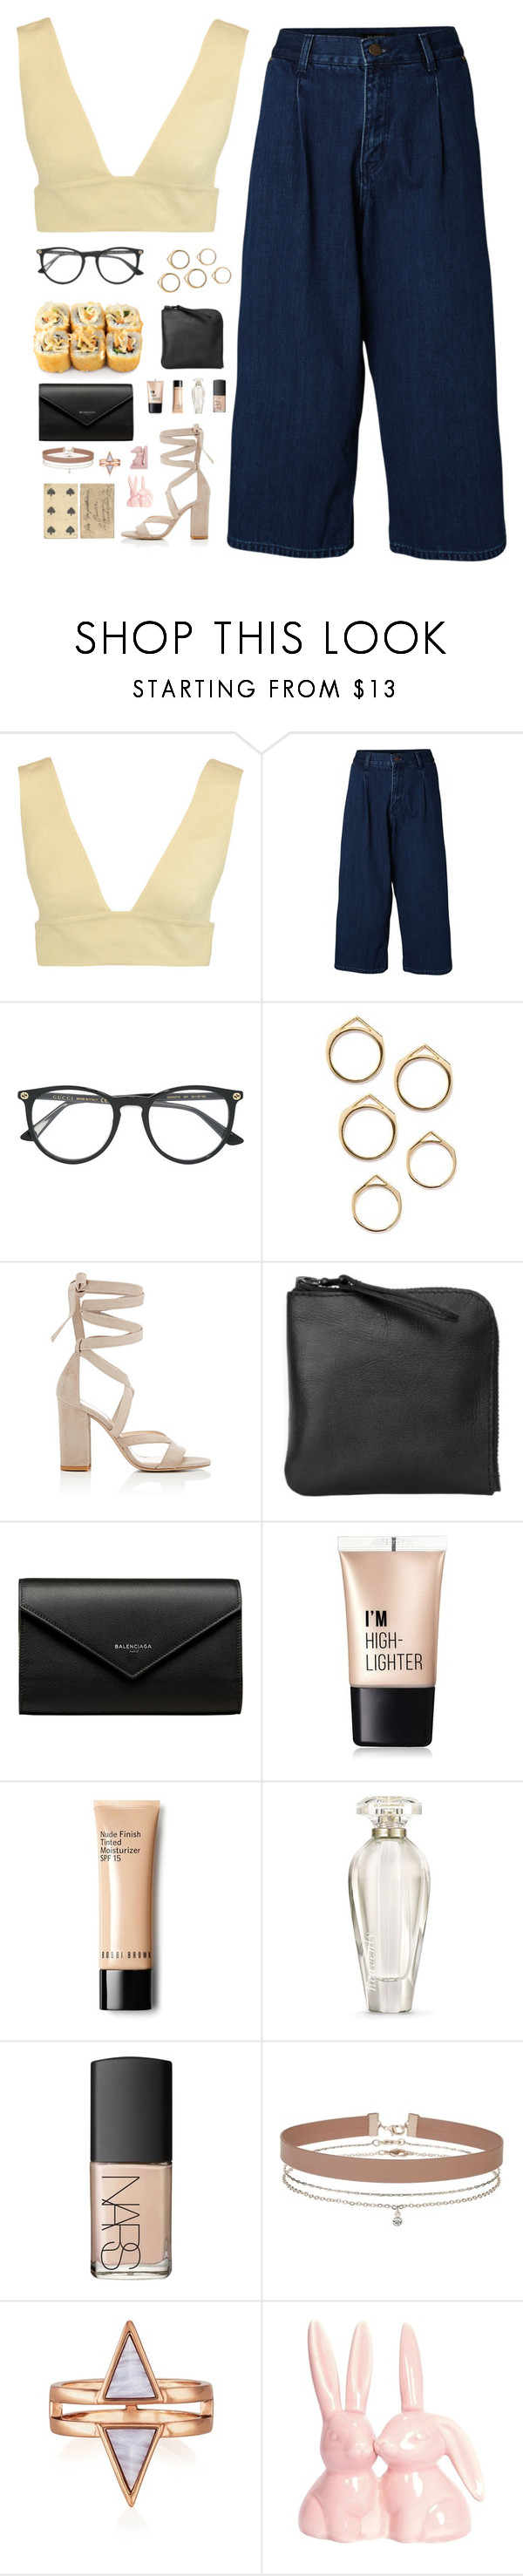 """C R O P P E D  H E A R T S /: elf"" by polyvoregallery ❤ liked on Polyvore featuring Valentino, SELECTED, Gucci, Barneys New York, Xenab Lone, Balenciaga, Charlotte Russe, Victoria's Secret, NARS Cosmetics and Miss Selfridge"